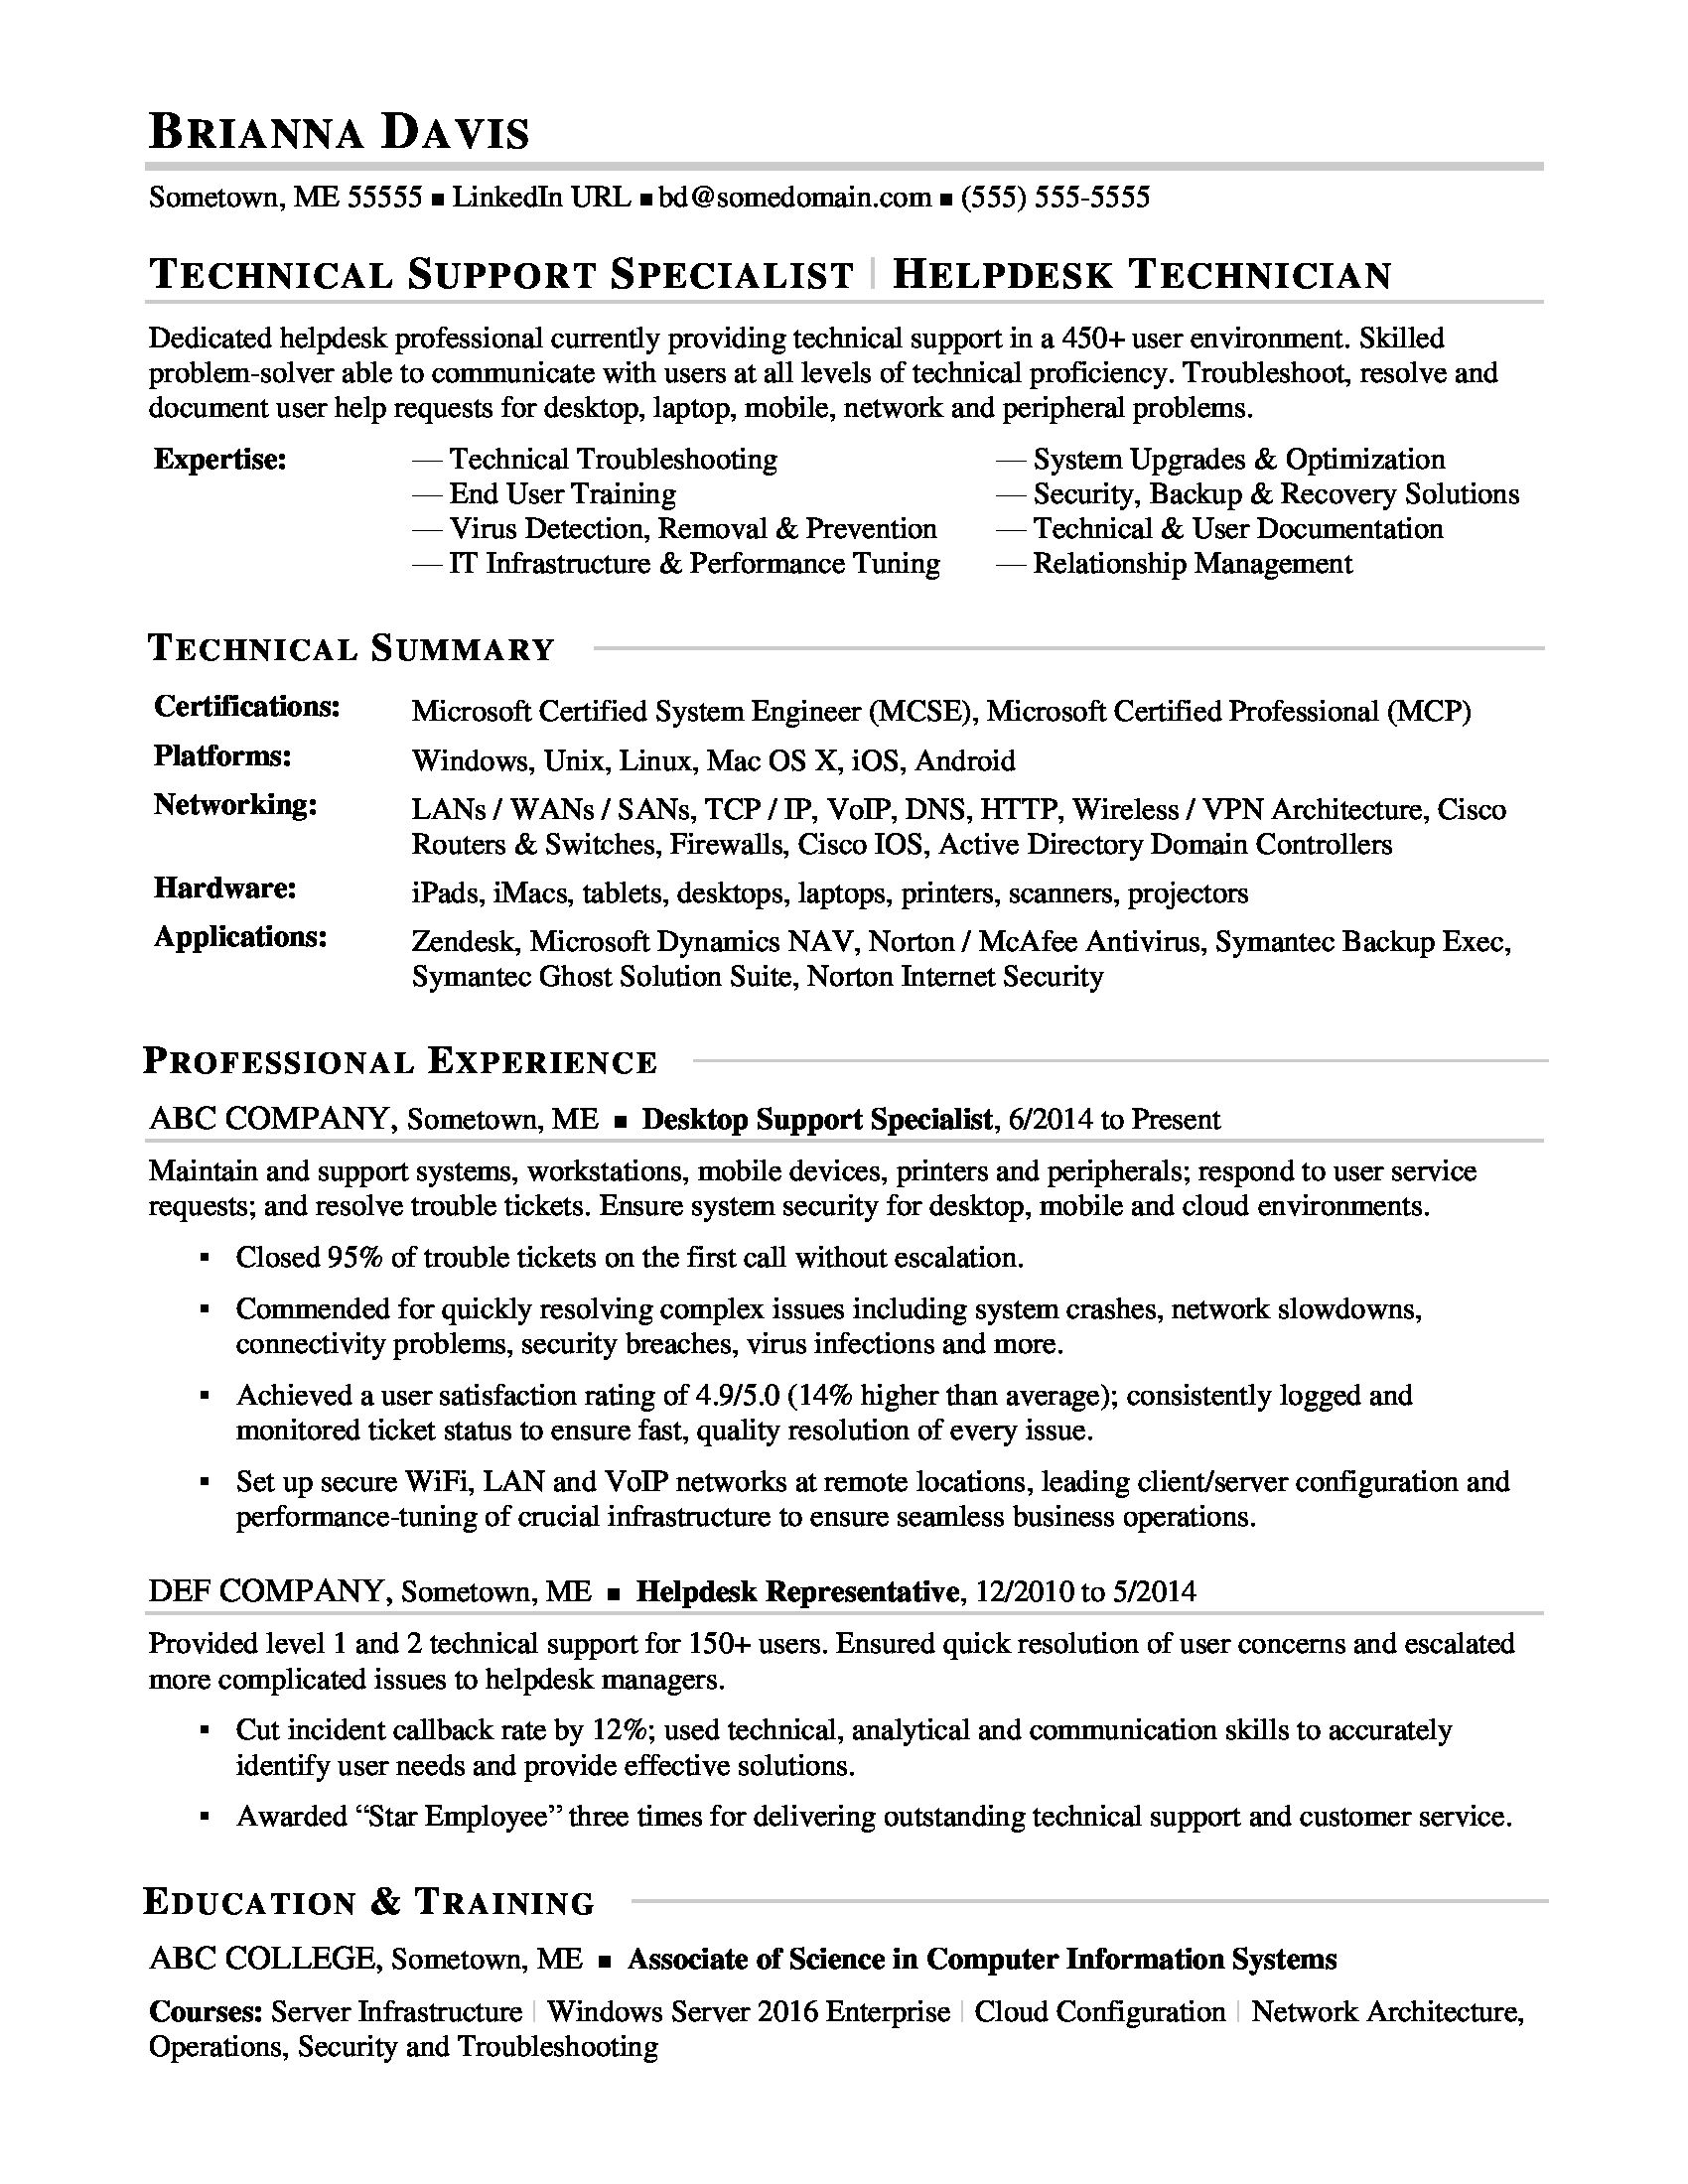 this sample resume for an experienced it help desk professional shows you can portray Resume Technical Support Summary Resume